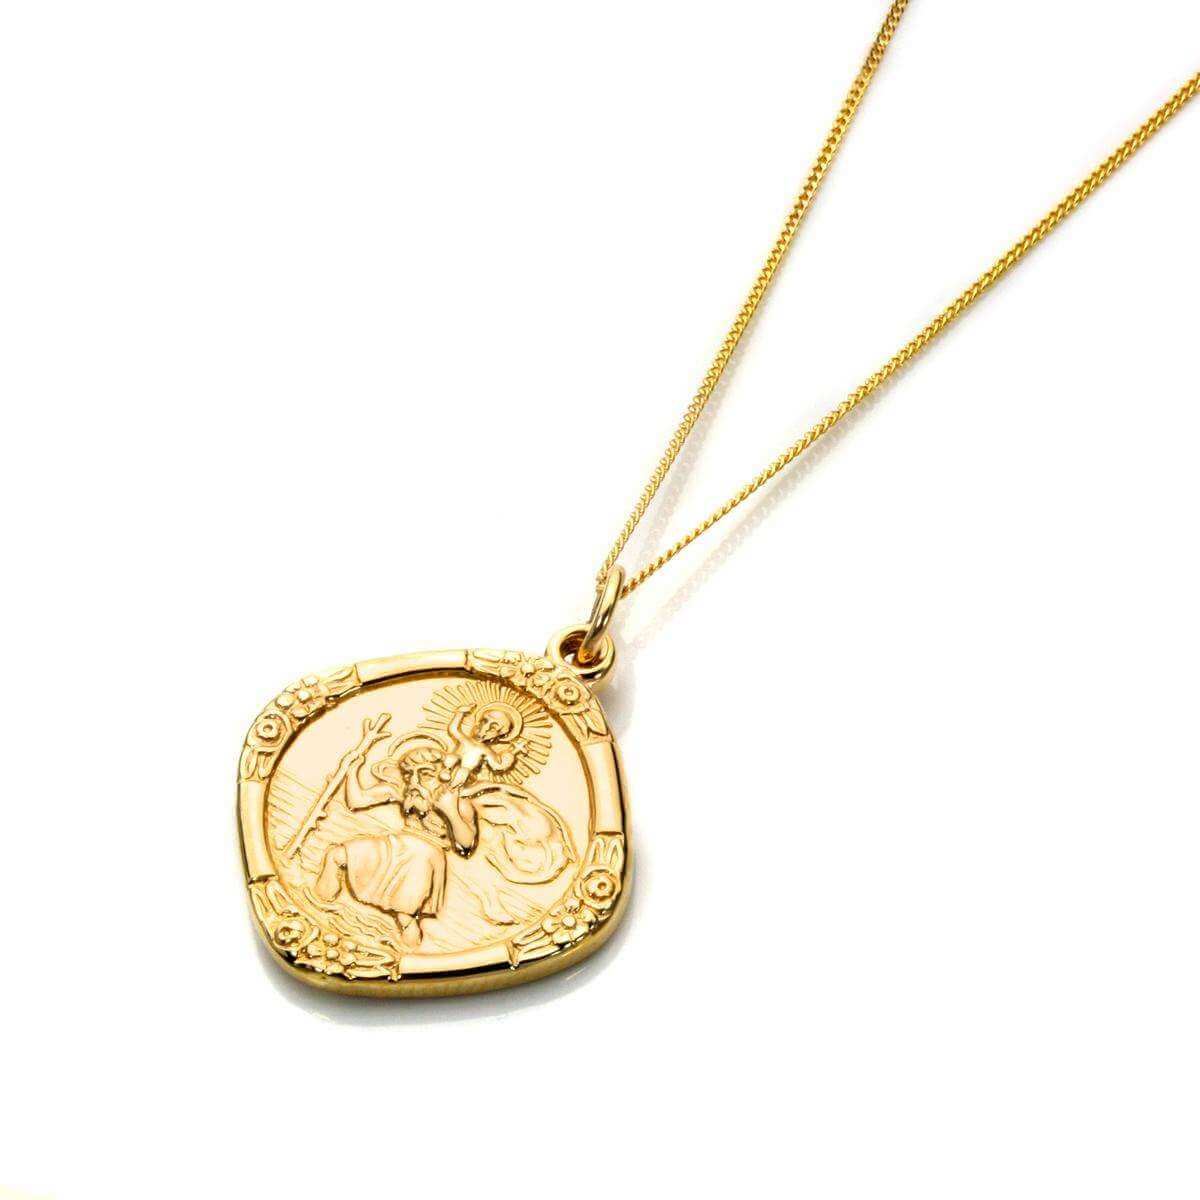 9ct Gold Medium Reversible Saint Christopher Pendant - 16 - 18 Inches